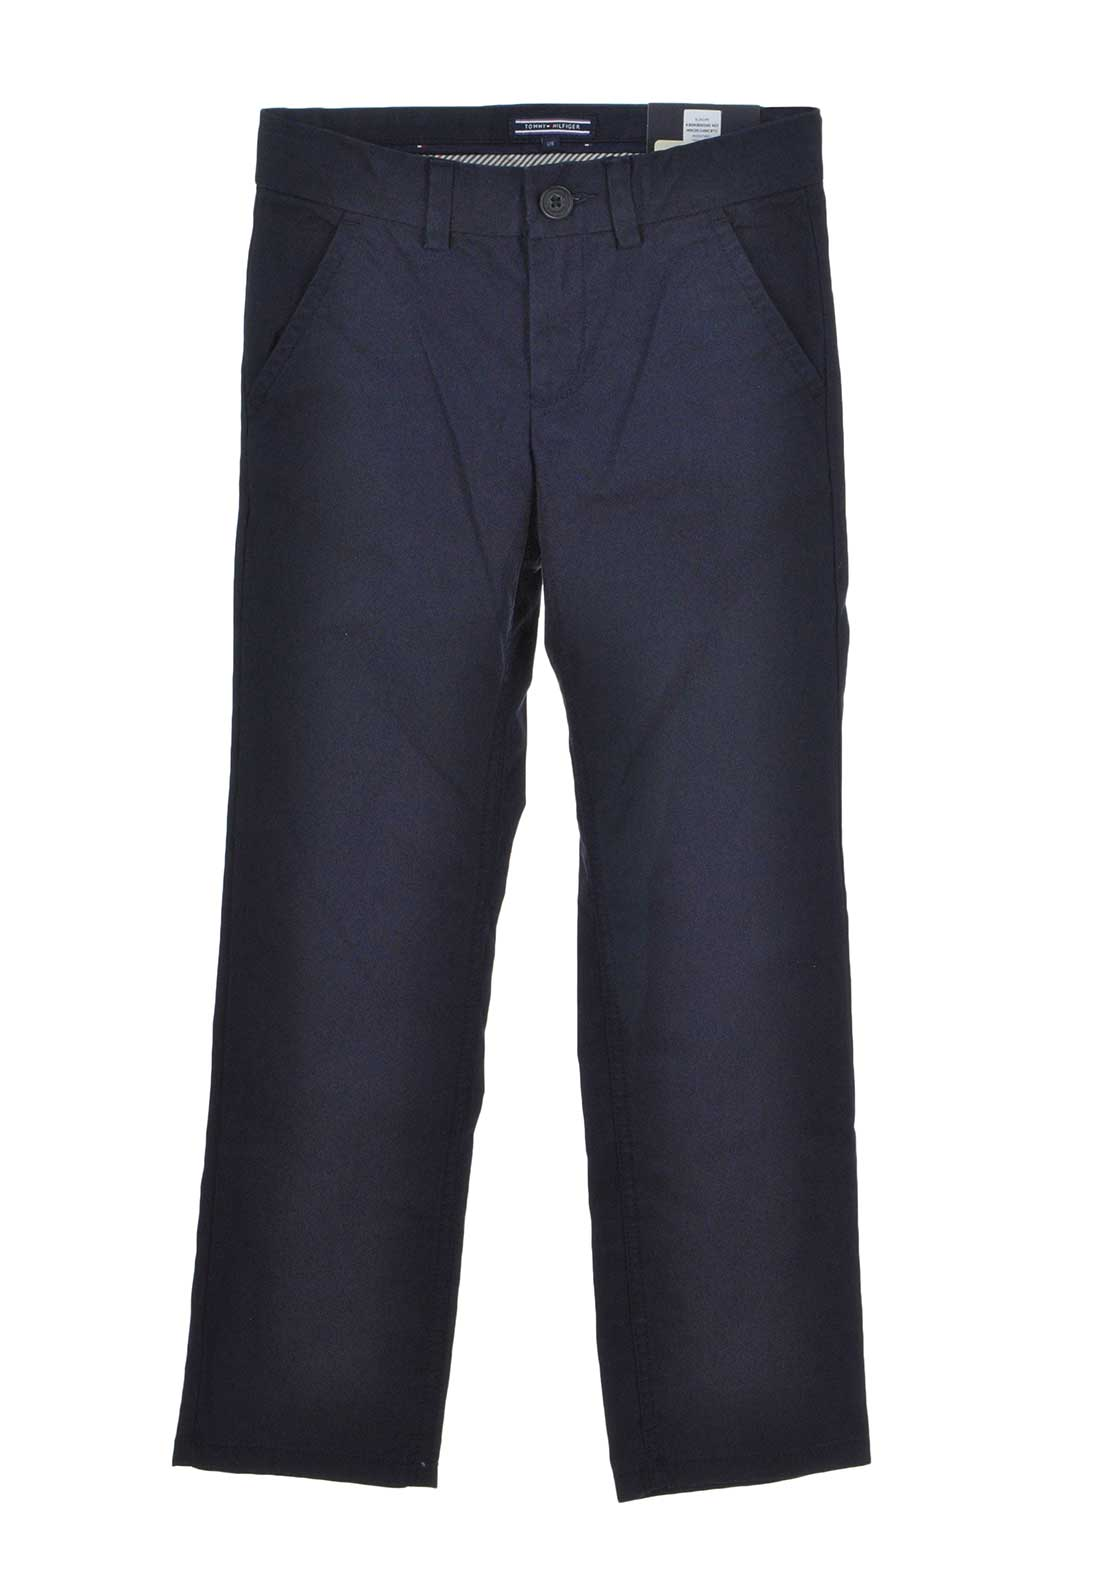 Tommy Hilfiger Boys Mercer Chino Trousers, Navy